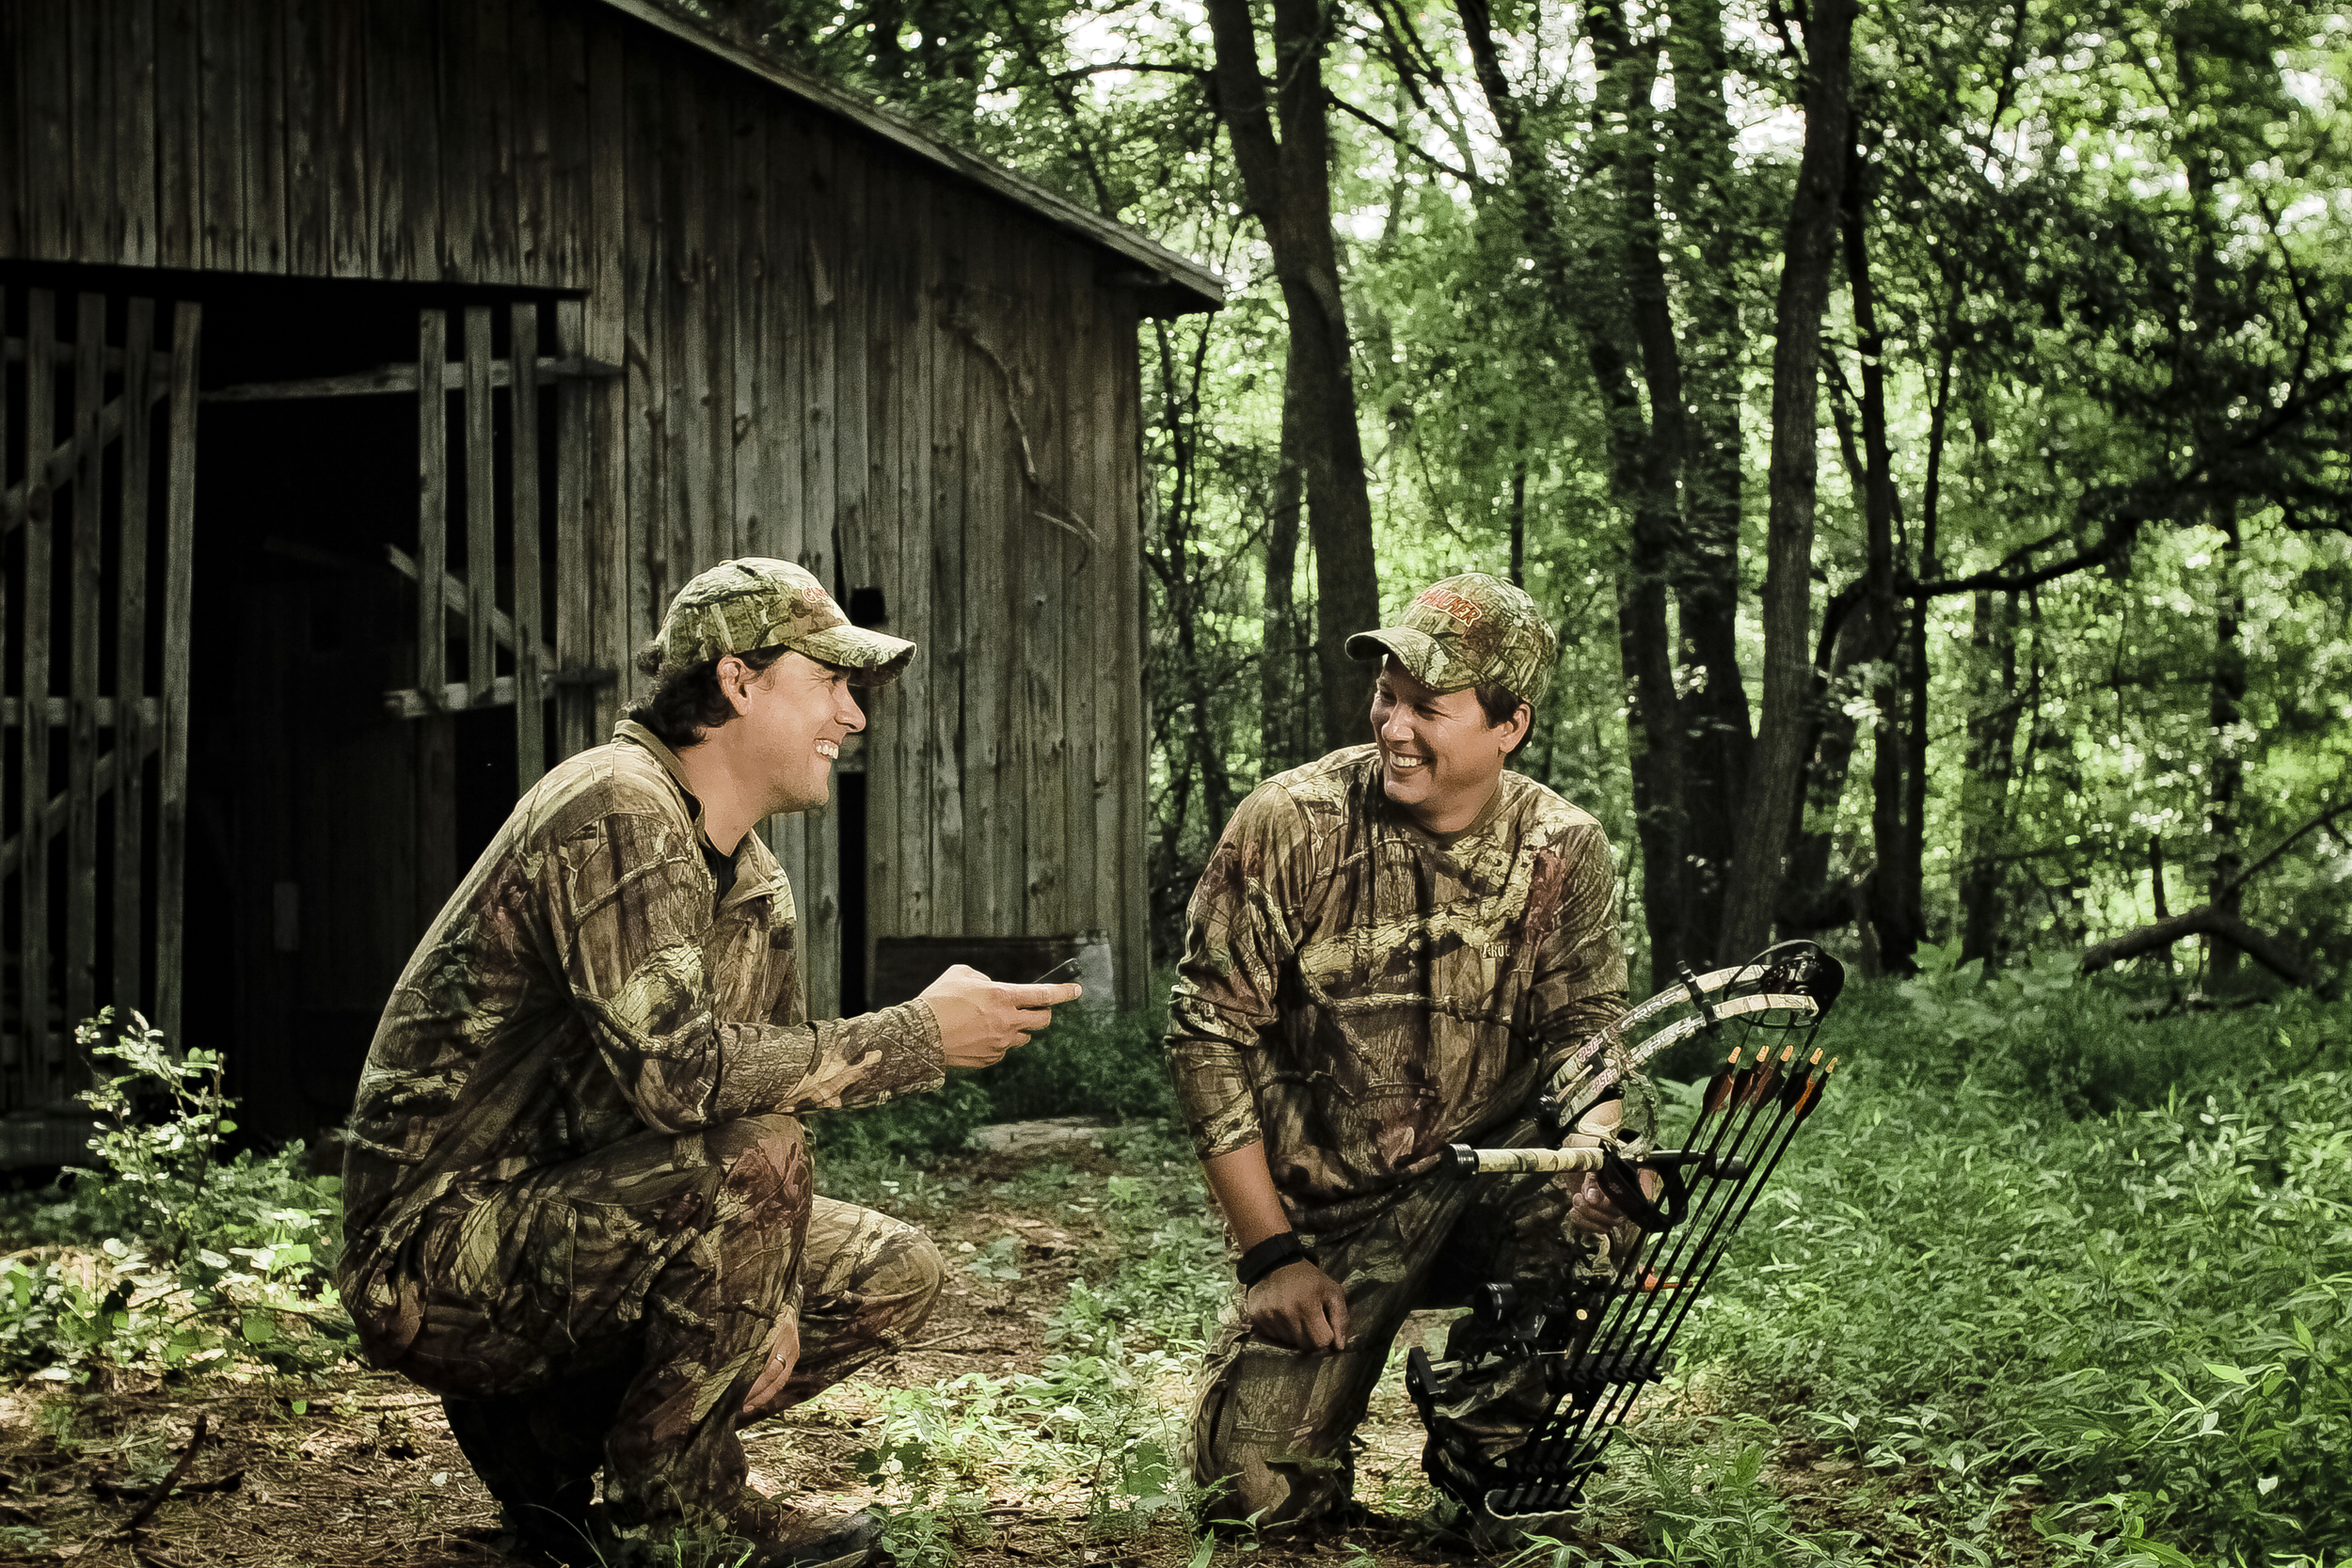 Hank Jr. and Billy Take a Break from the Hunt!